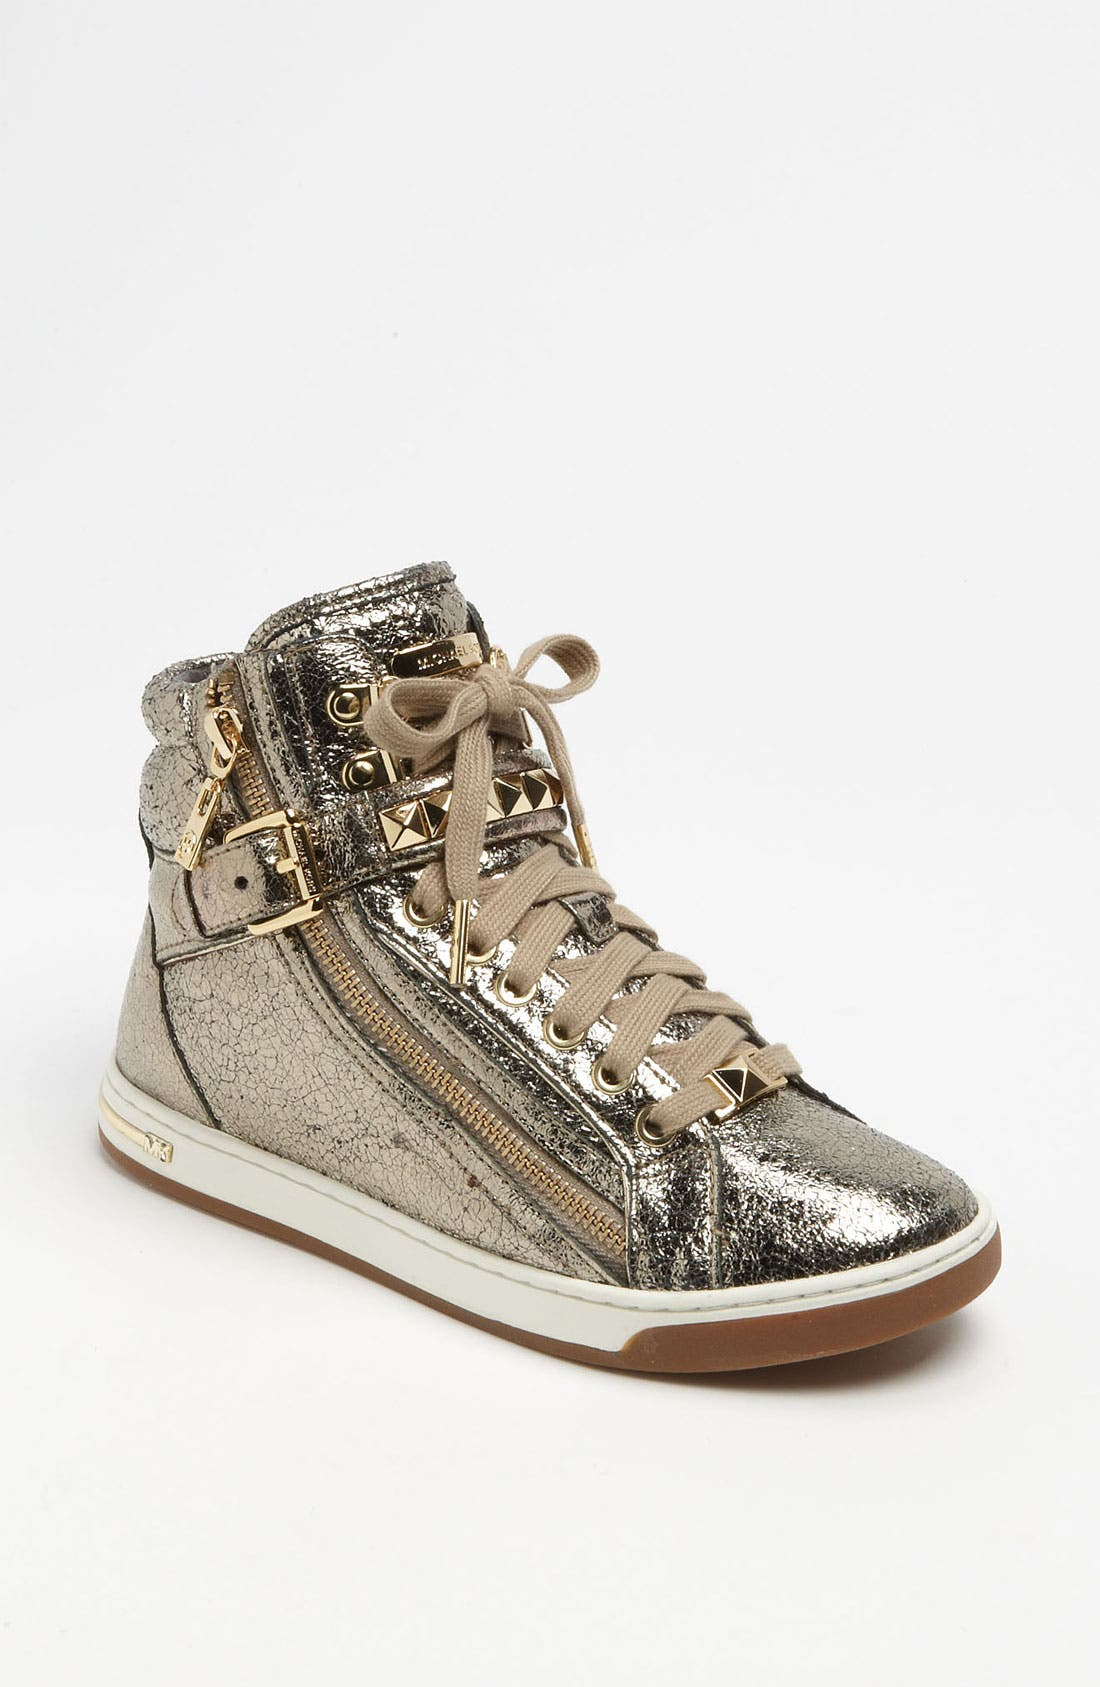 Main Image - MICHAEL Michael Kors 'Glam' High Top Sneaker